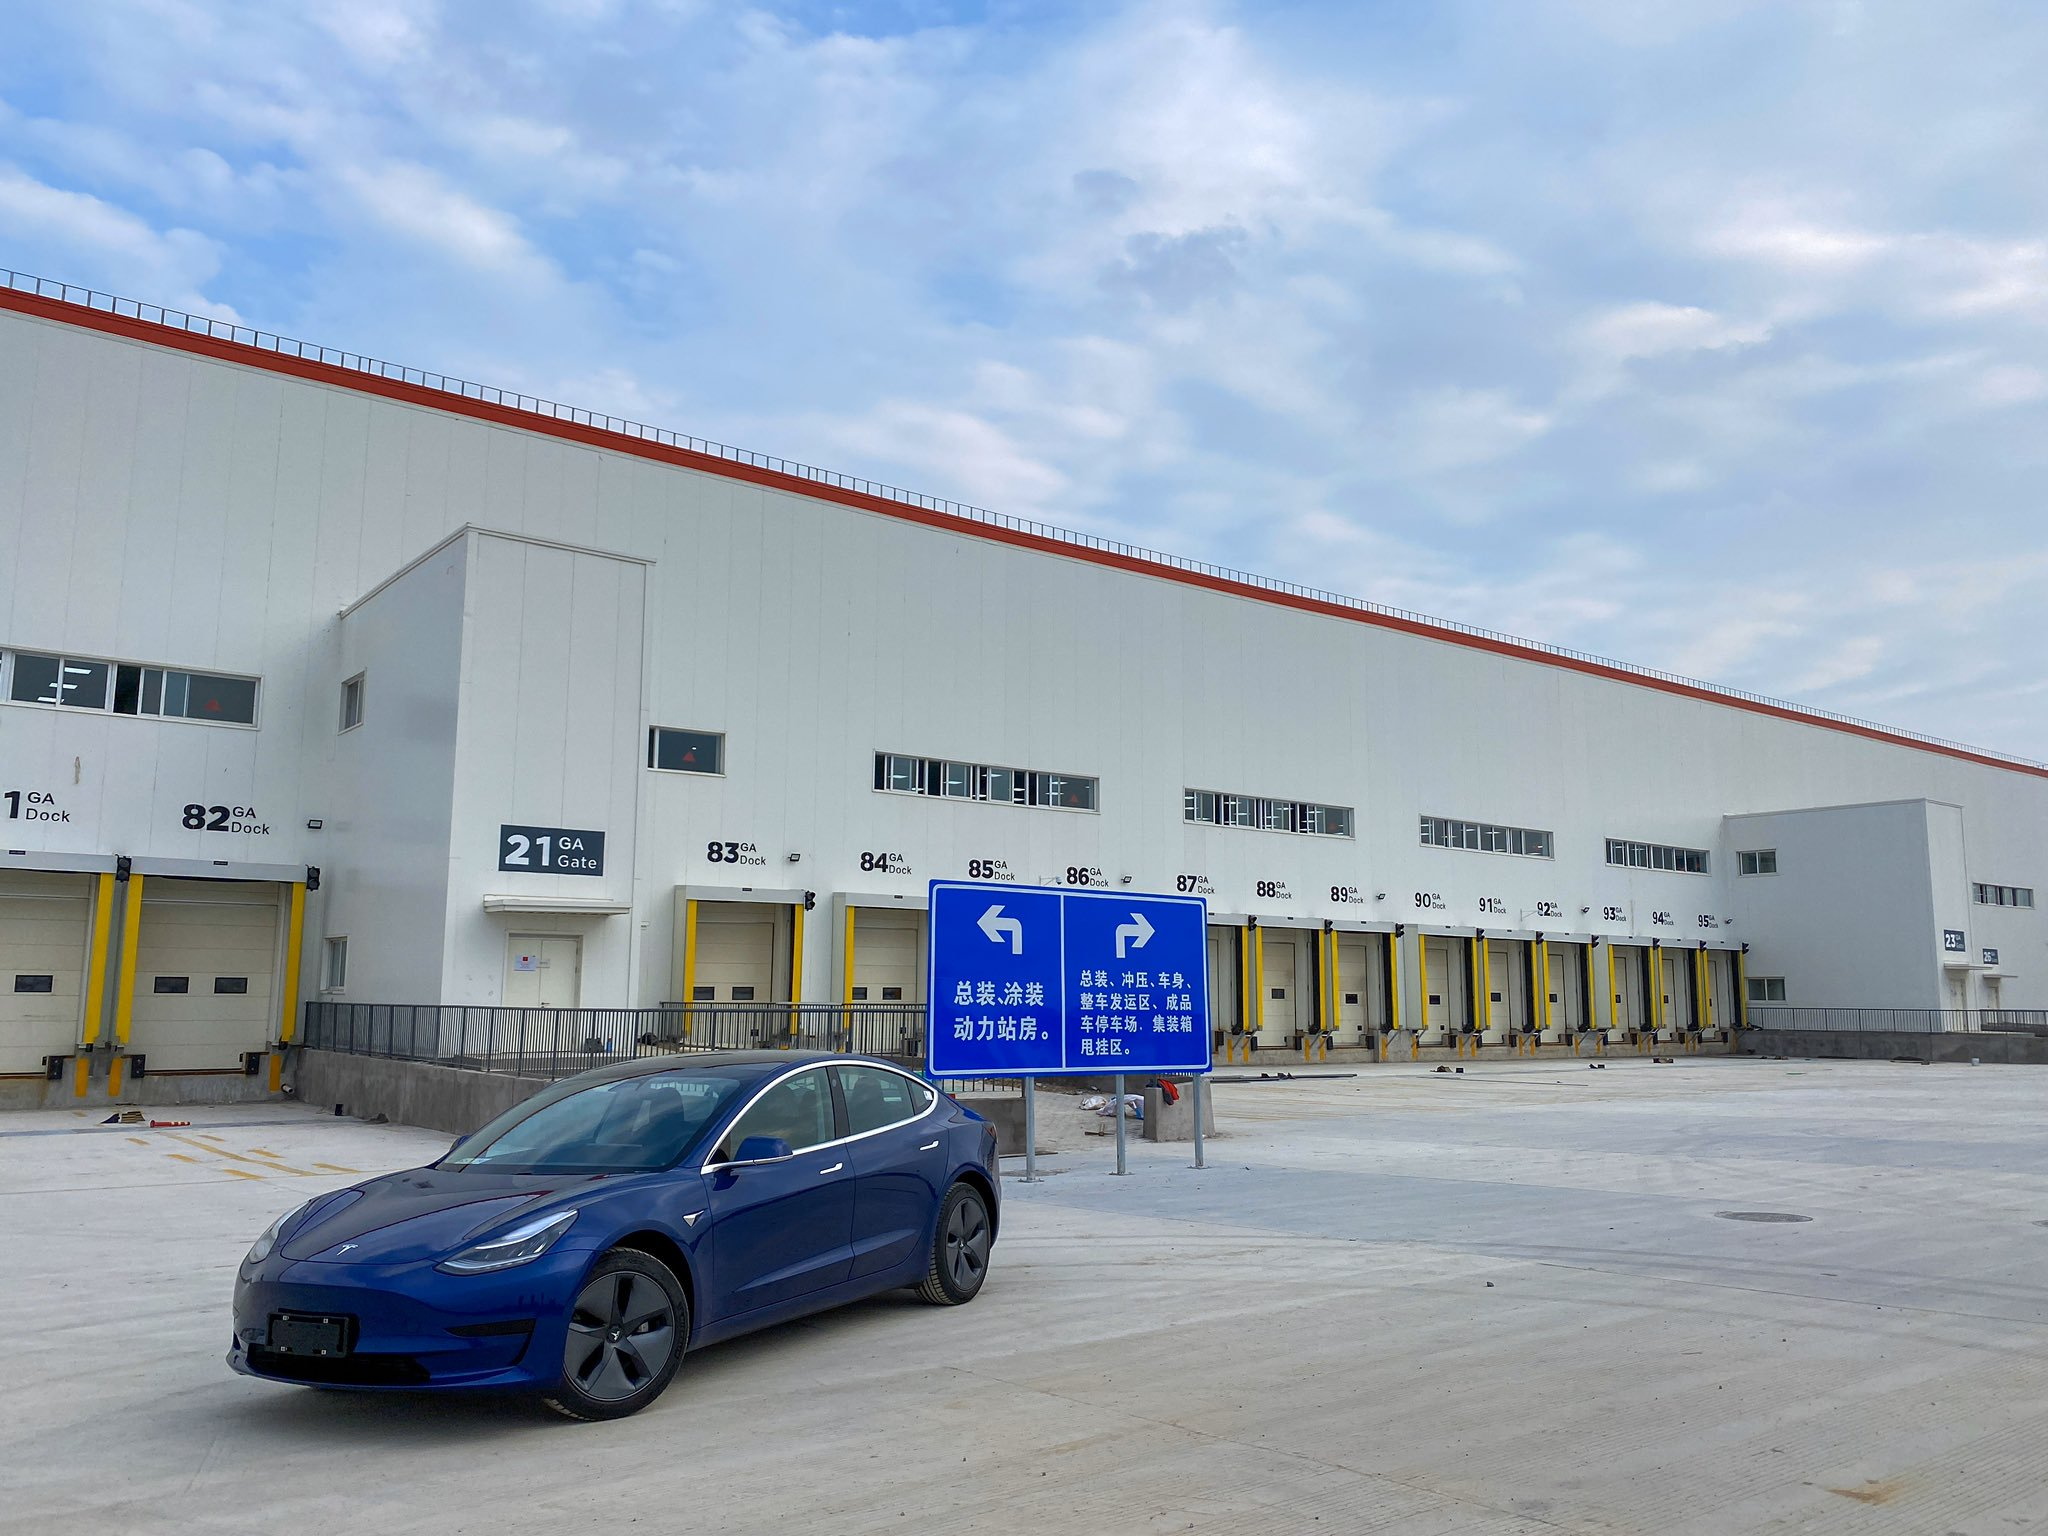 Tesla Made-in-China Model 3 in front of Gigafactory Shanghai